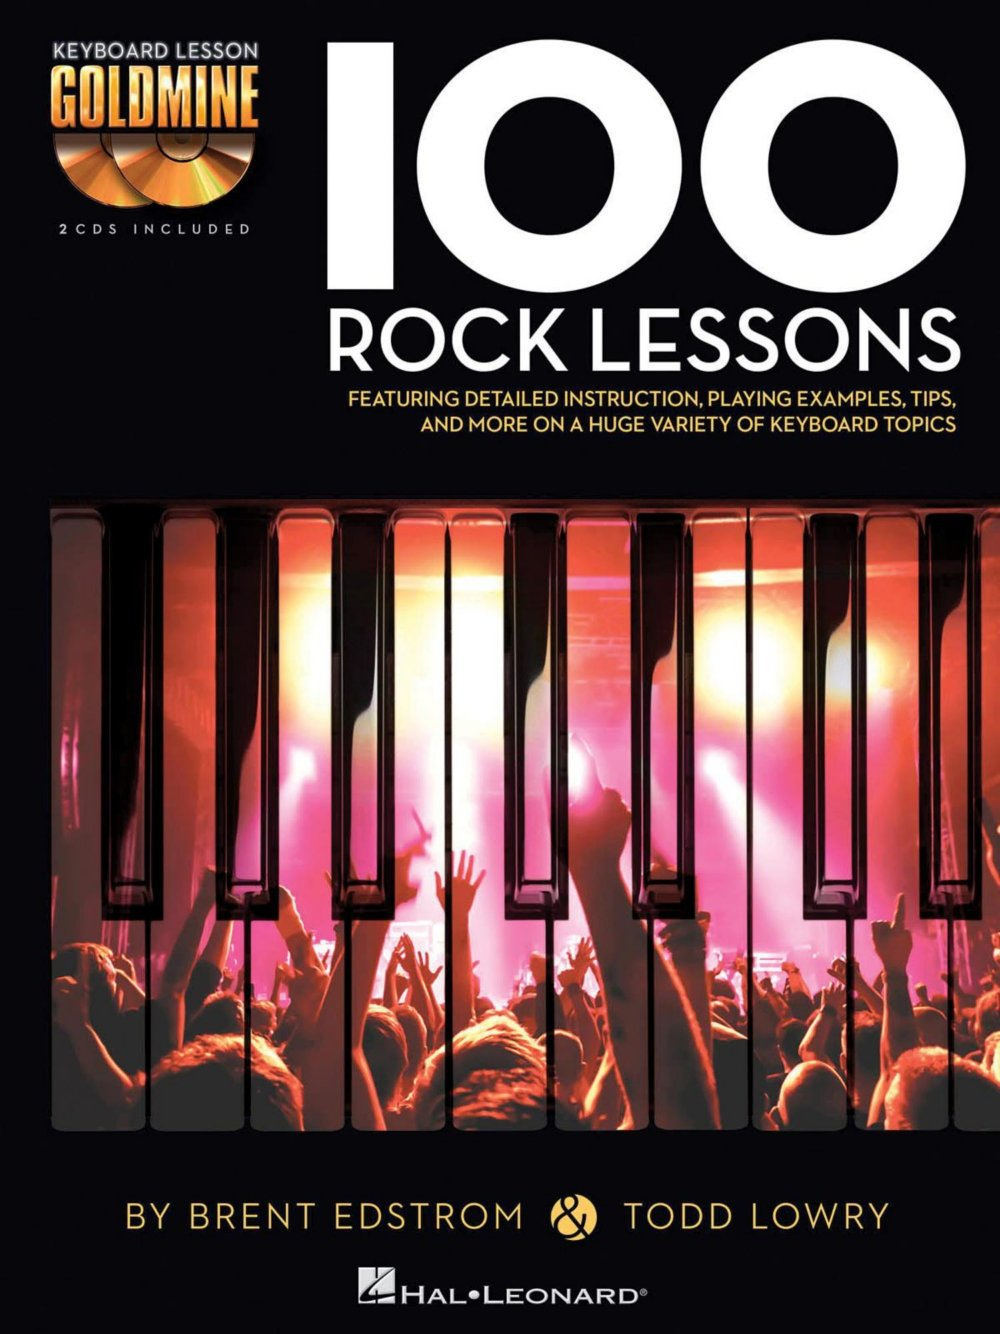 Hal Leonard 100 Rock Lessons - Keyboard Lesson Goldmine Series Book/2-CD  Pack: Hal Leonard: 0884088949358: Amazon.com: Books